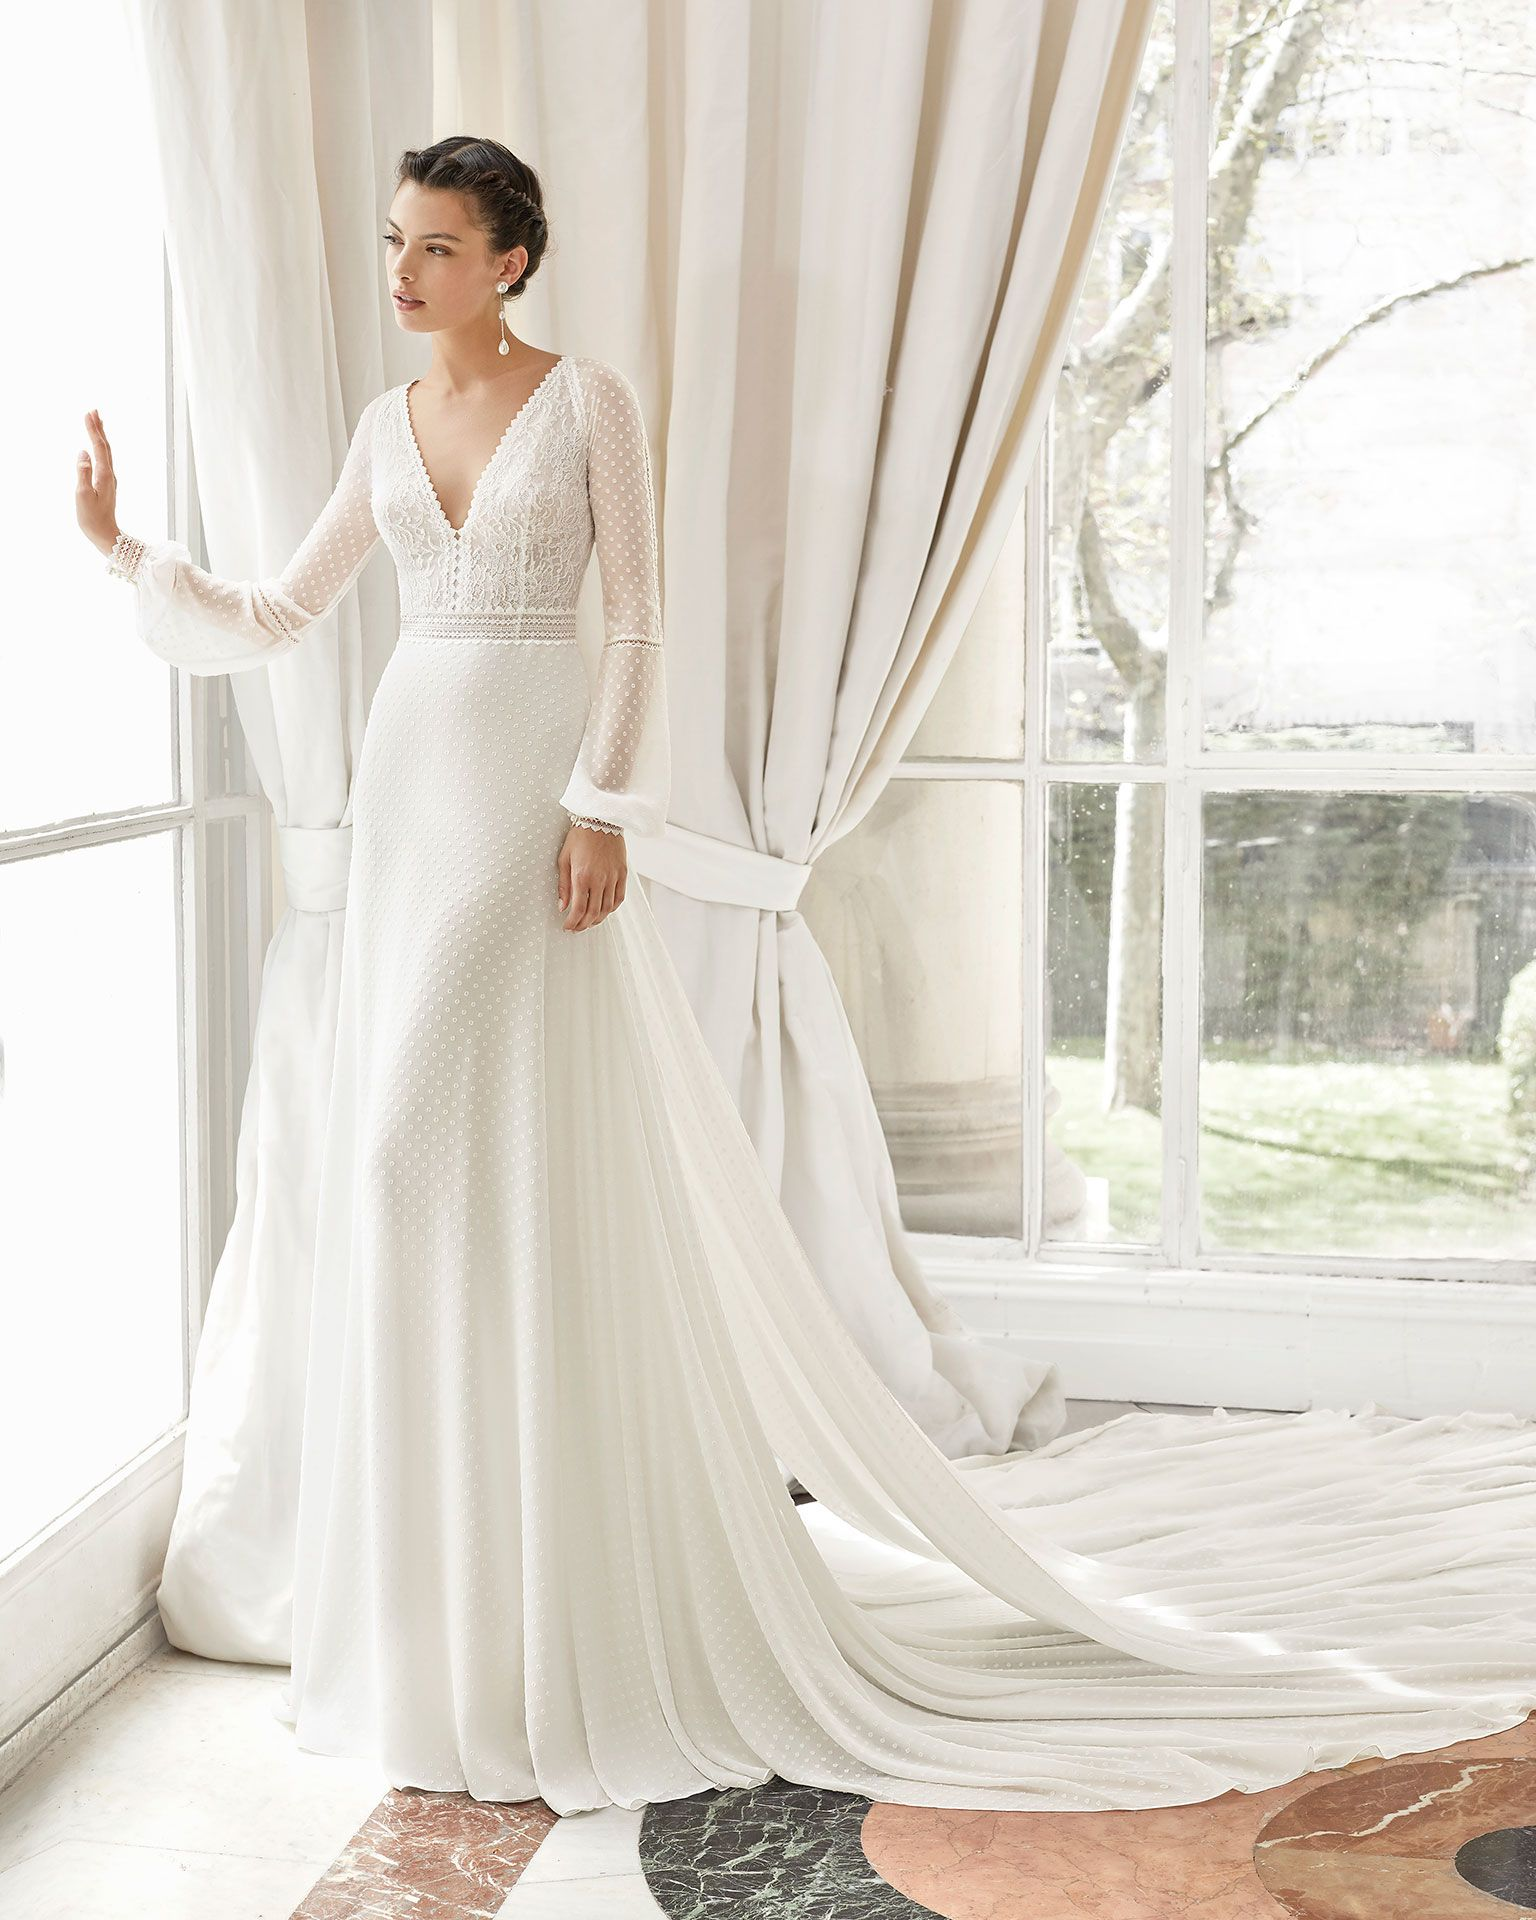 bfddac6aa93 MARZO - Bridal 2019. ROSA CLARA COUTURE Collection in 2019 ...